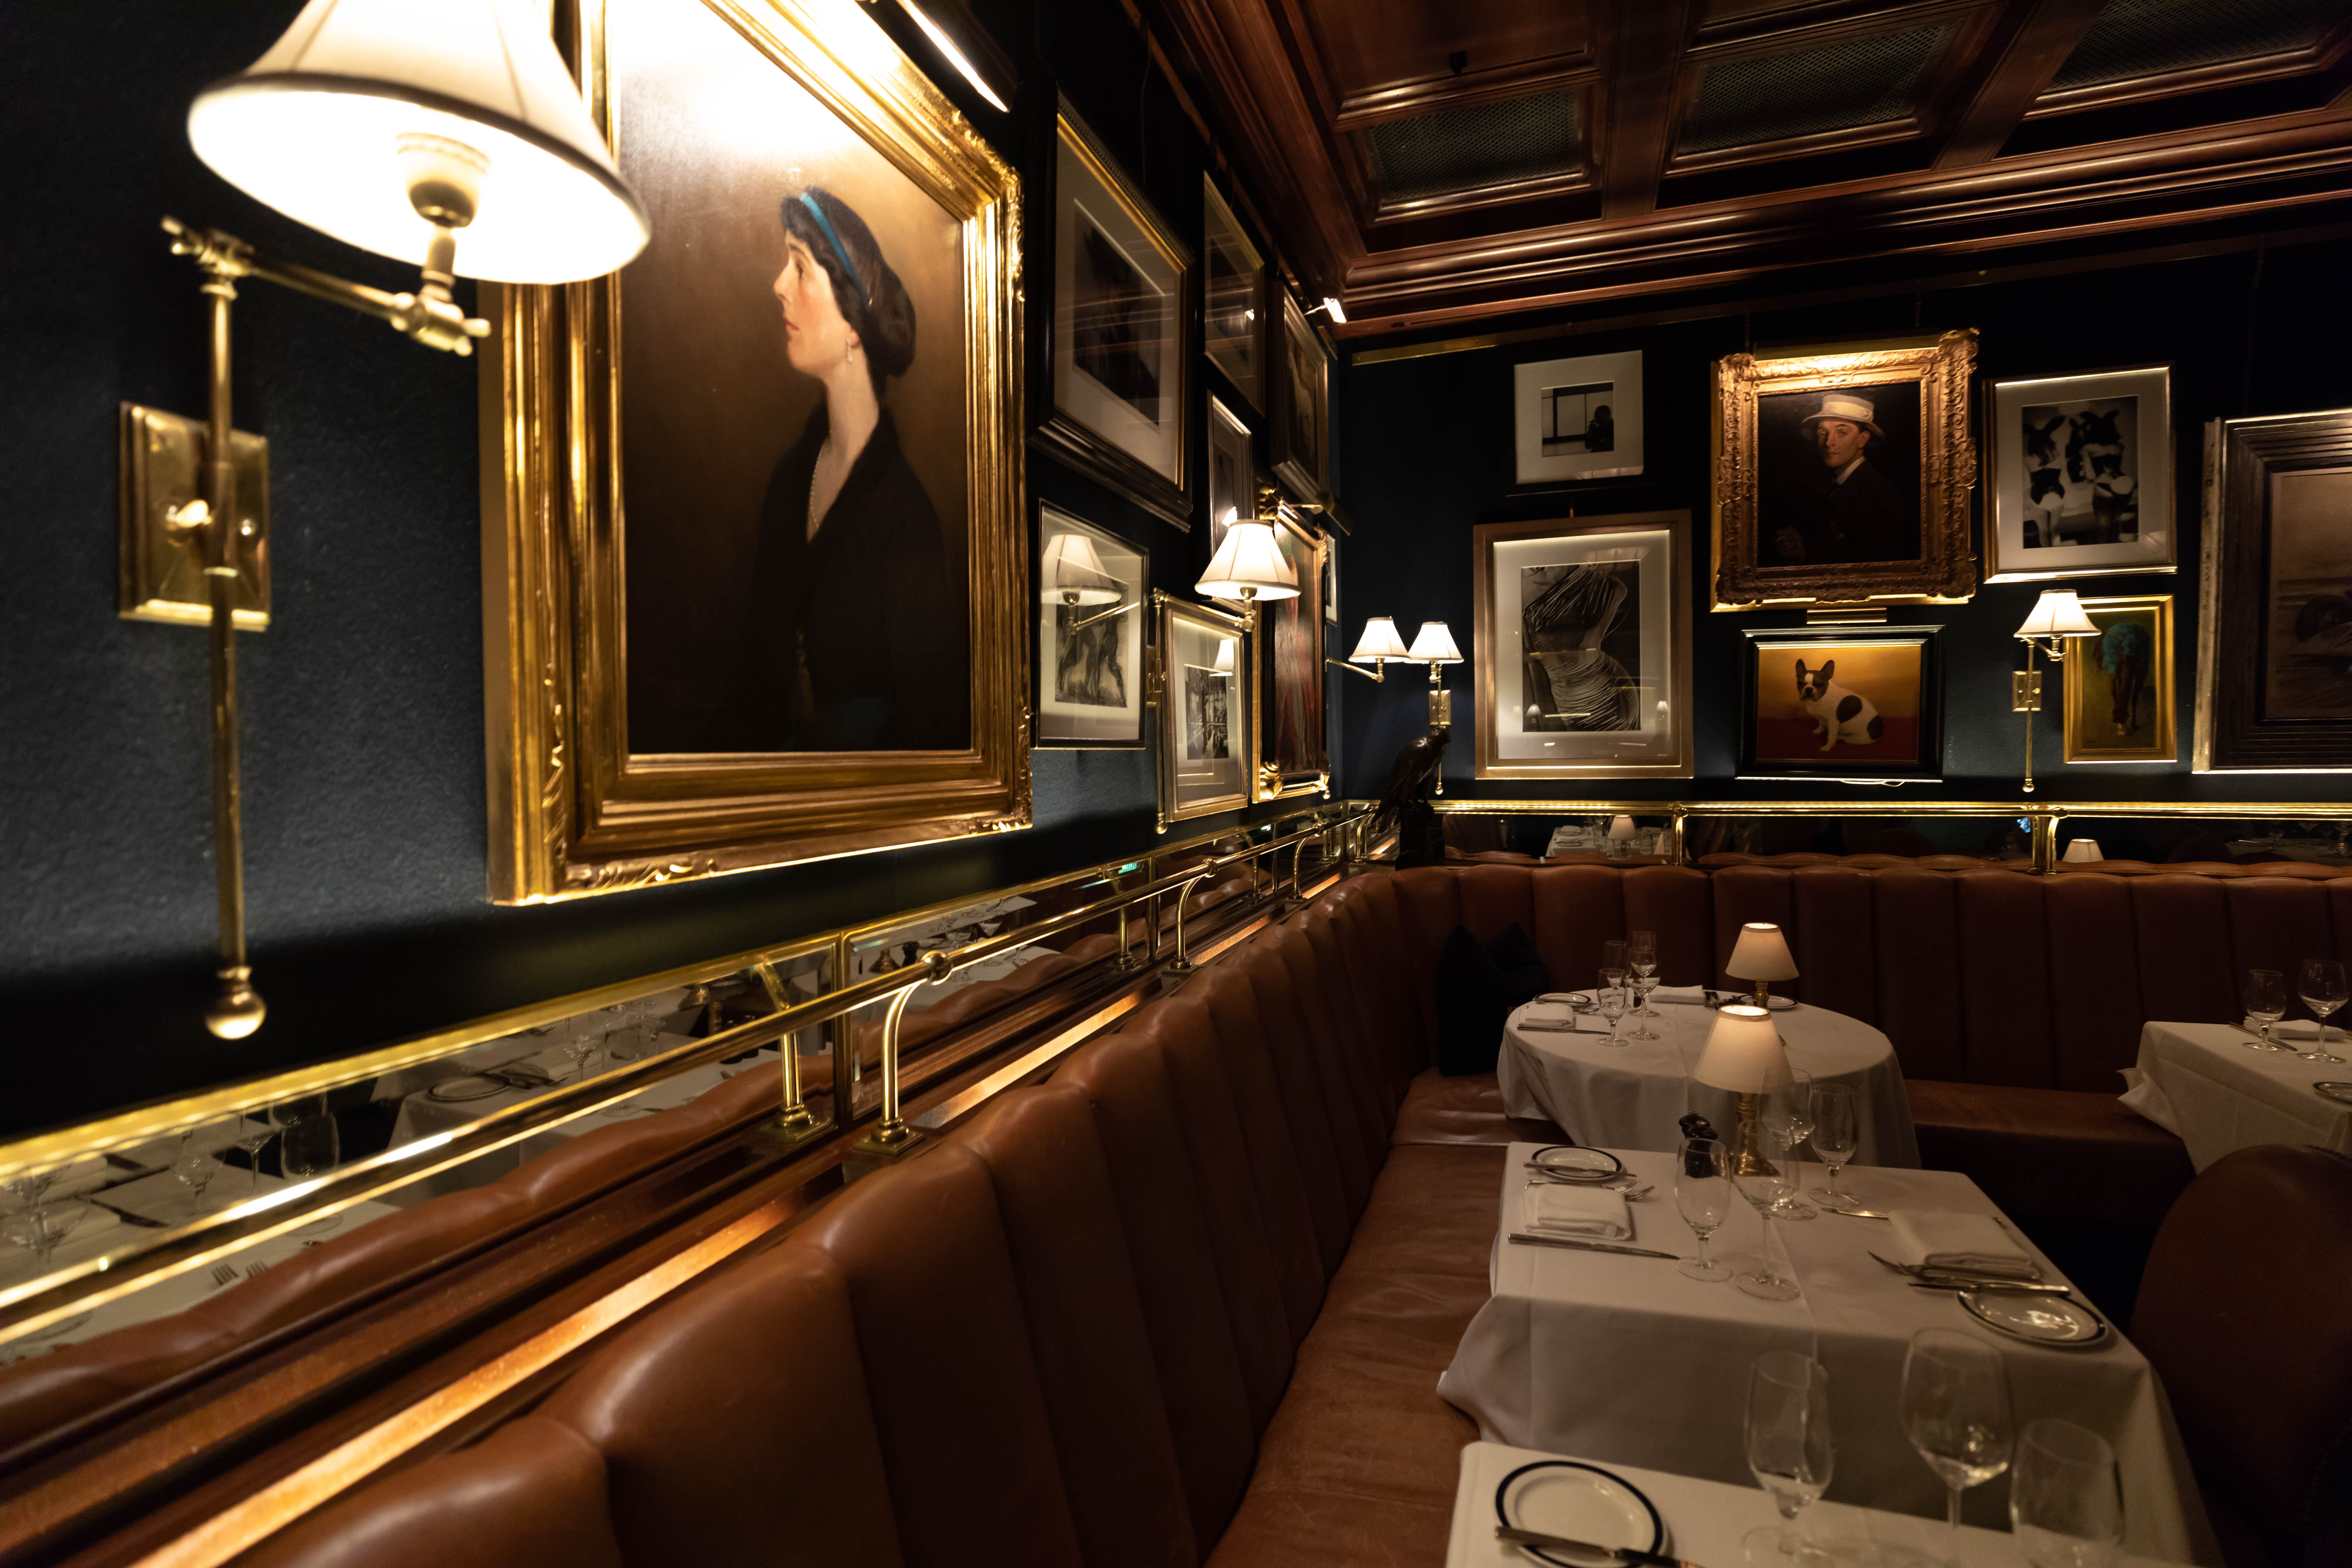 RL Ralph Lauren Restaurant Chicago Flagship Eatery Luxury Restaurants of the World Best Places to Eat in Chicago